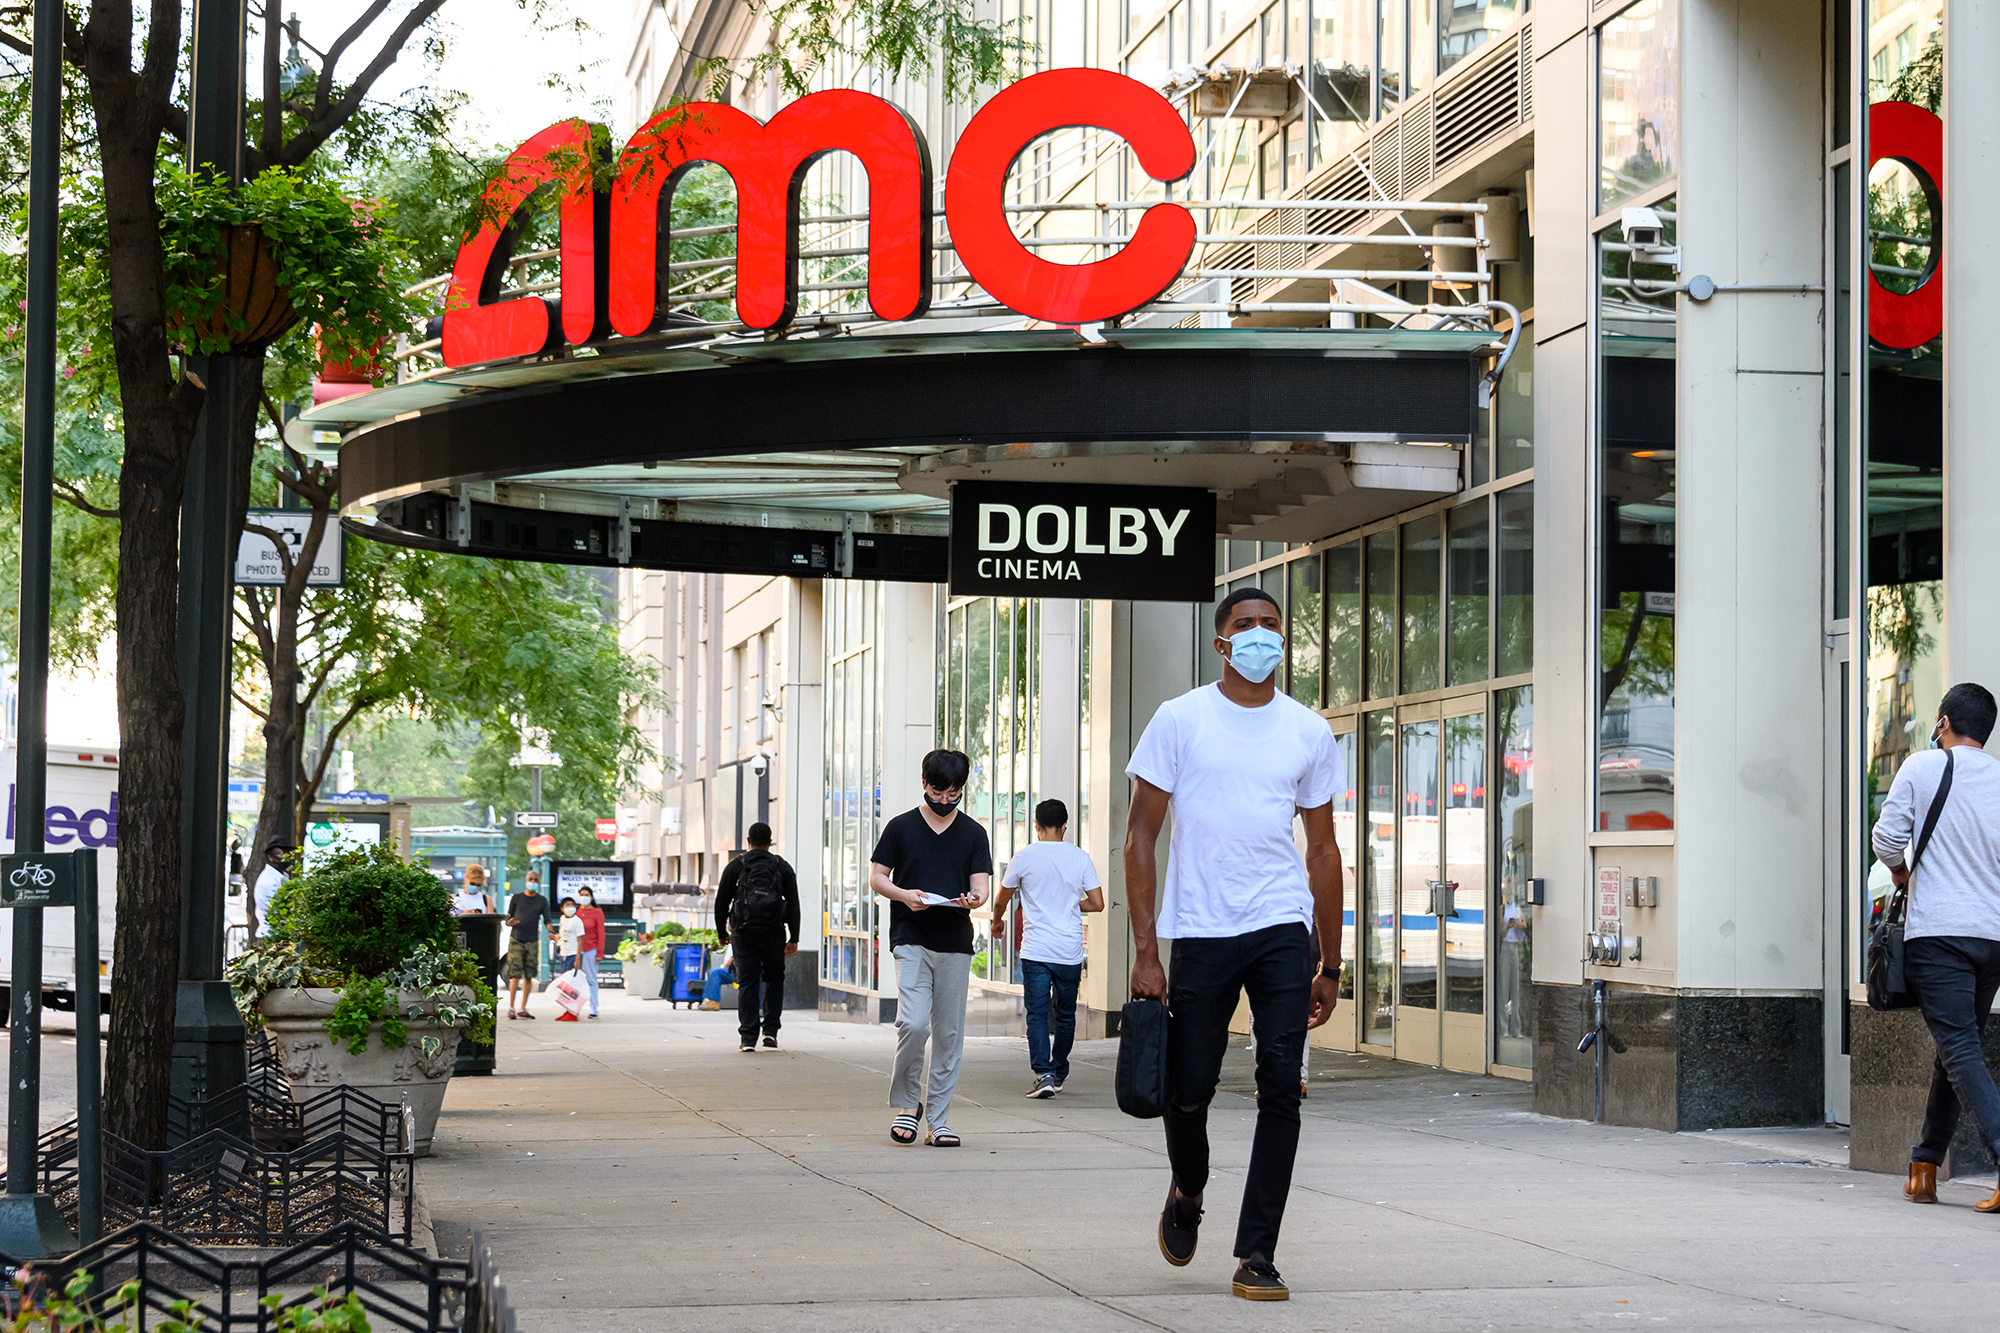 Amc To Sell 15 Cent Tickets When Theaters Reopen Next Week